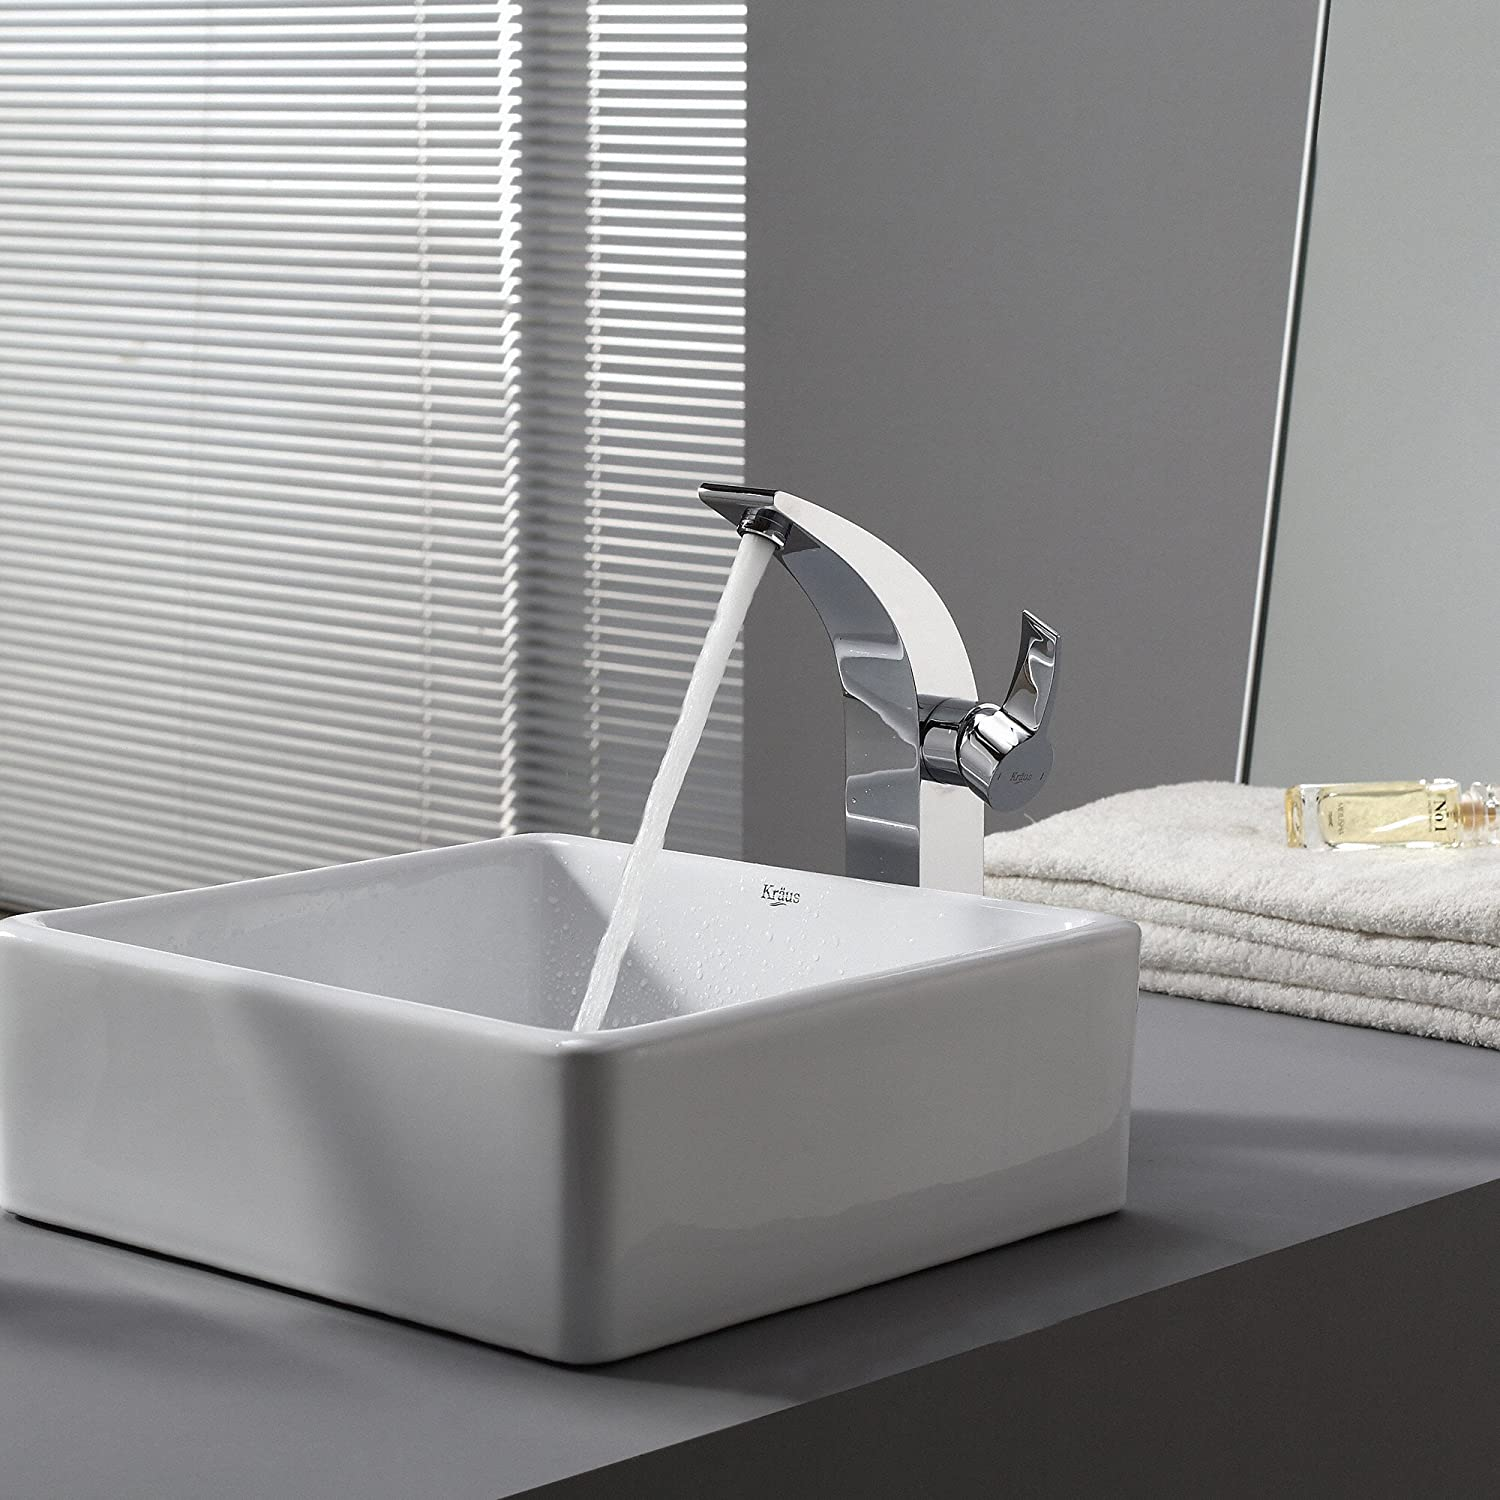 Bathroom available in 5 finishes vessel bathroom sinks msrp 425 - Kraus Kcv 120 White Square Ceramic Bathroom Sink Vessel Sinks Amazon Com